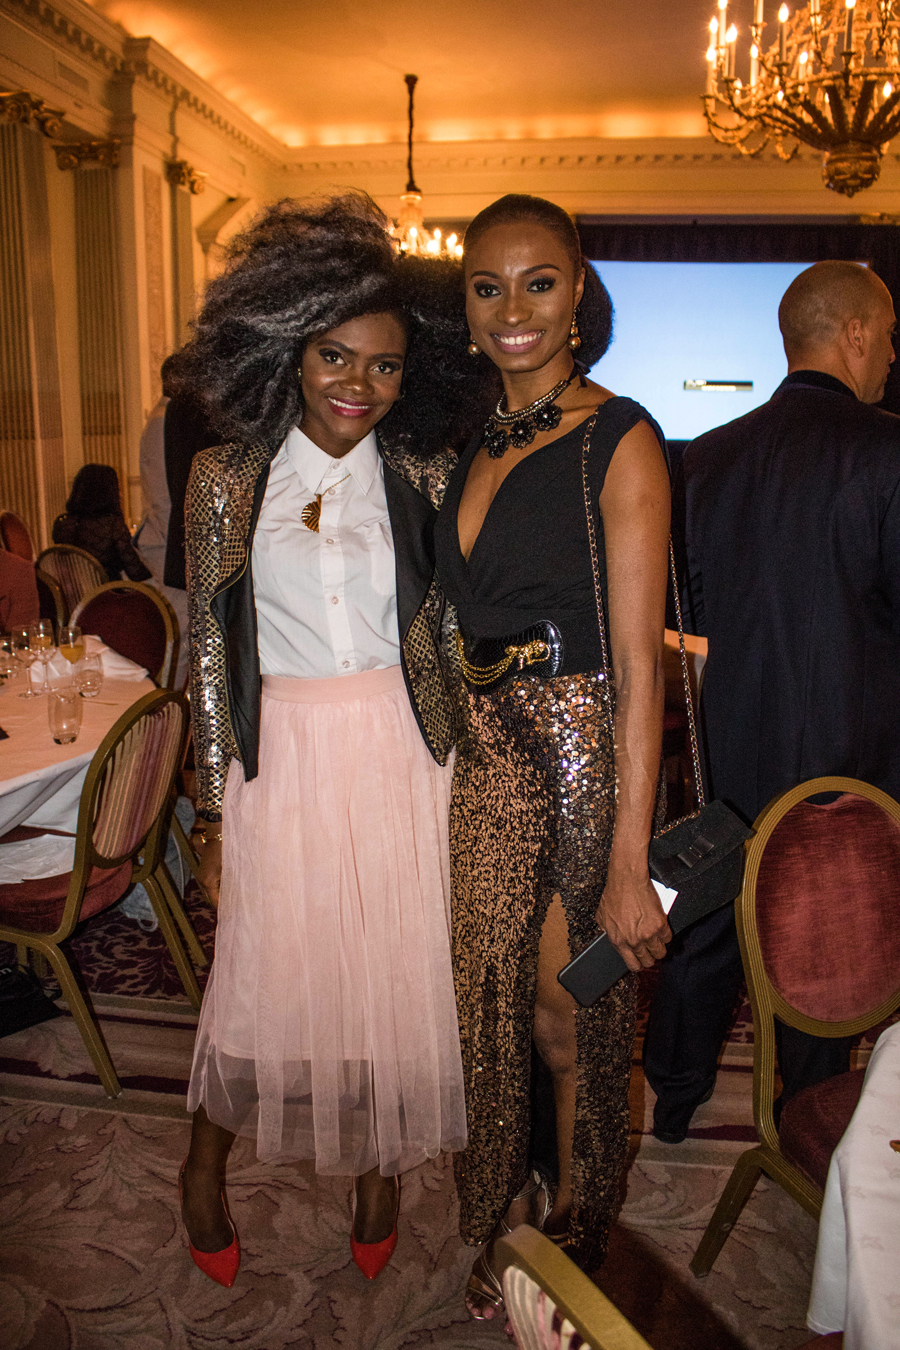 http://www.glamafrica.com/2017/09/22/glam-africa-ball-london/